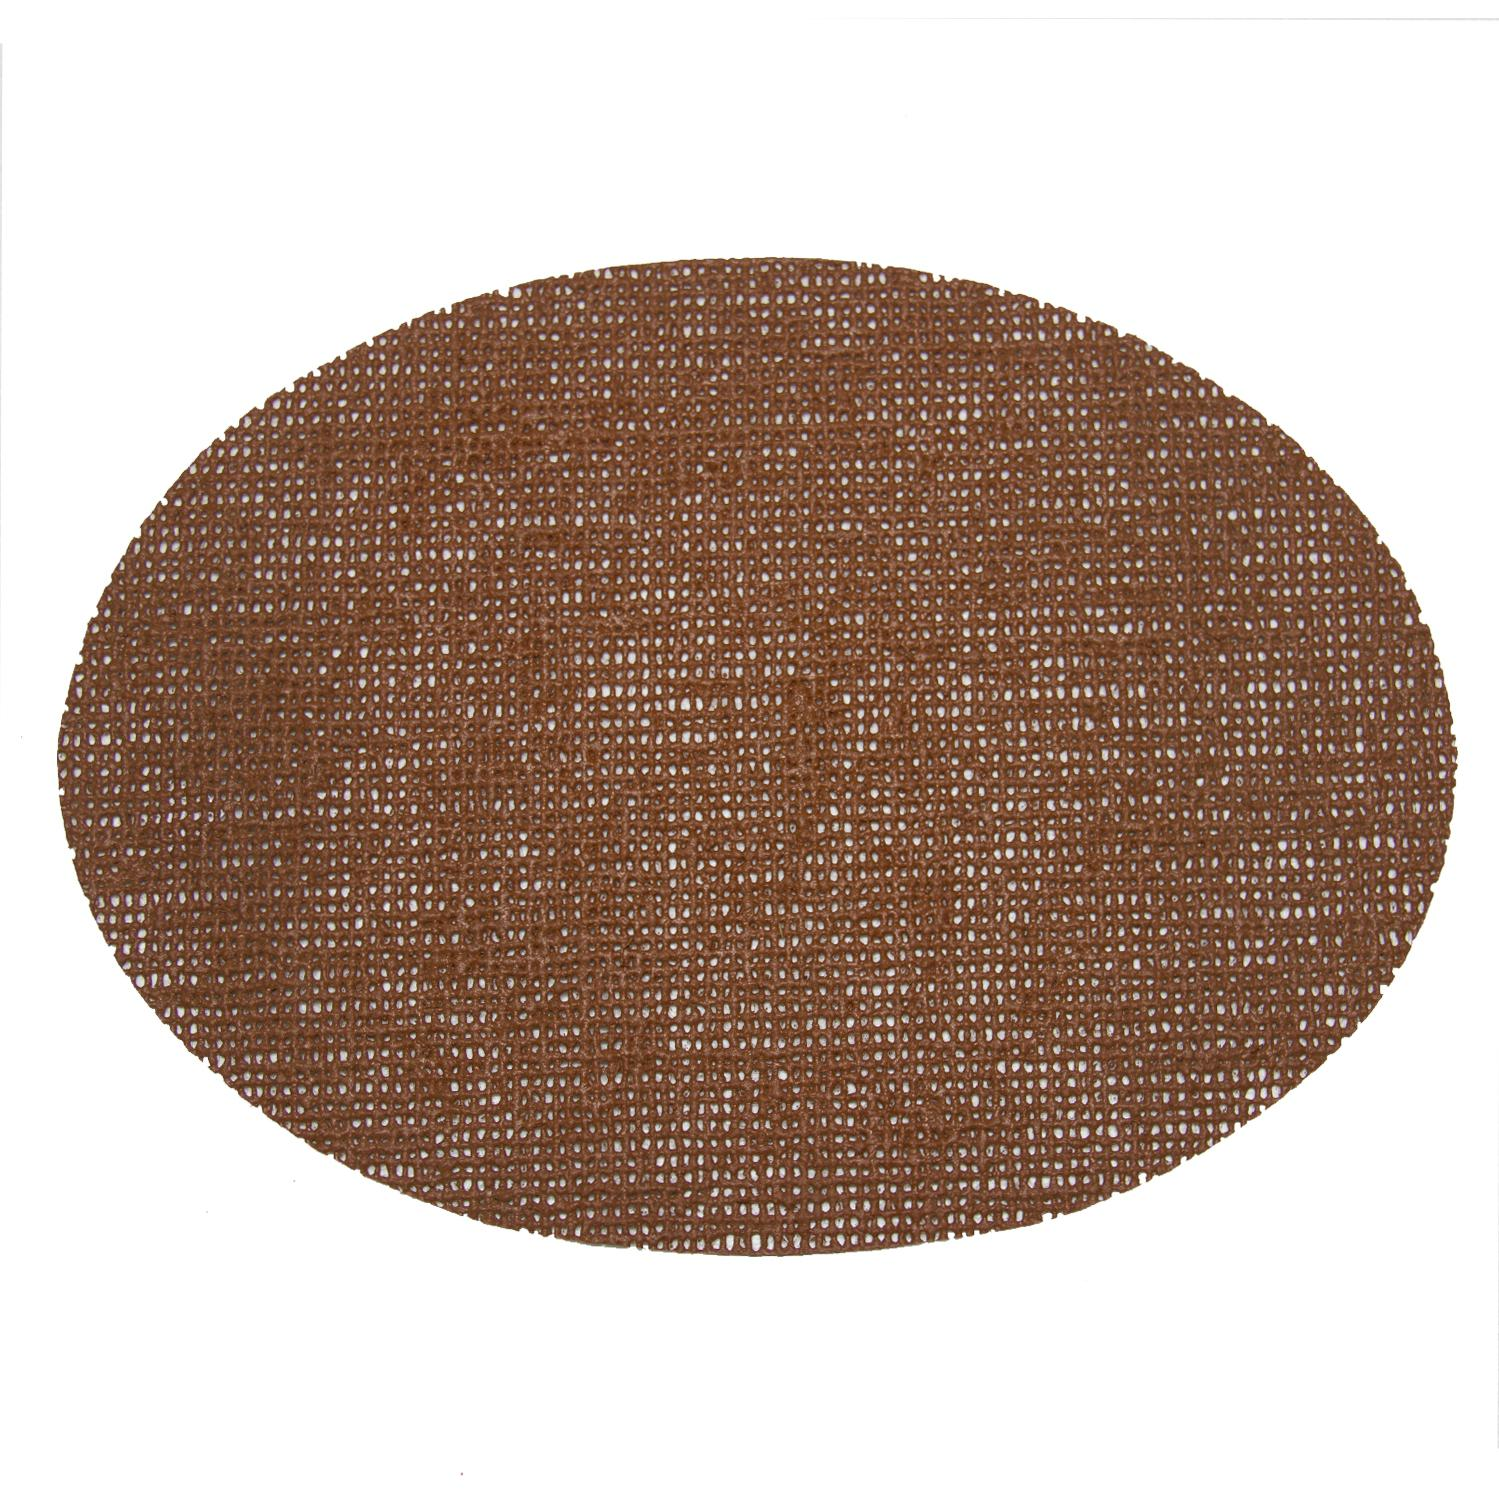 Picture of Fishnet Placemats 18 X 13 Oval Placemat - Butterscotch